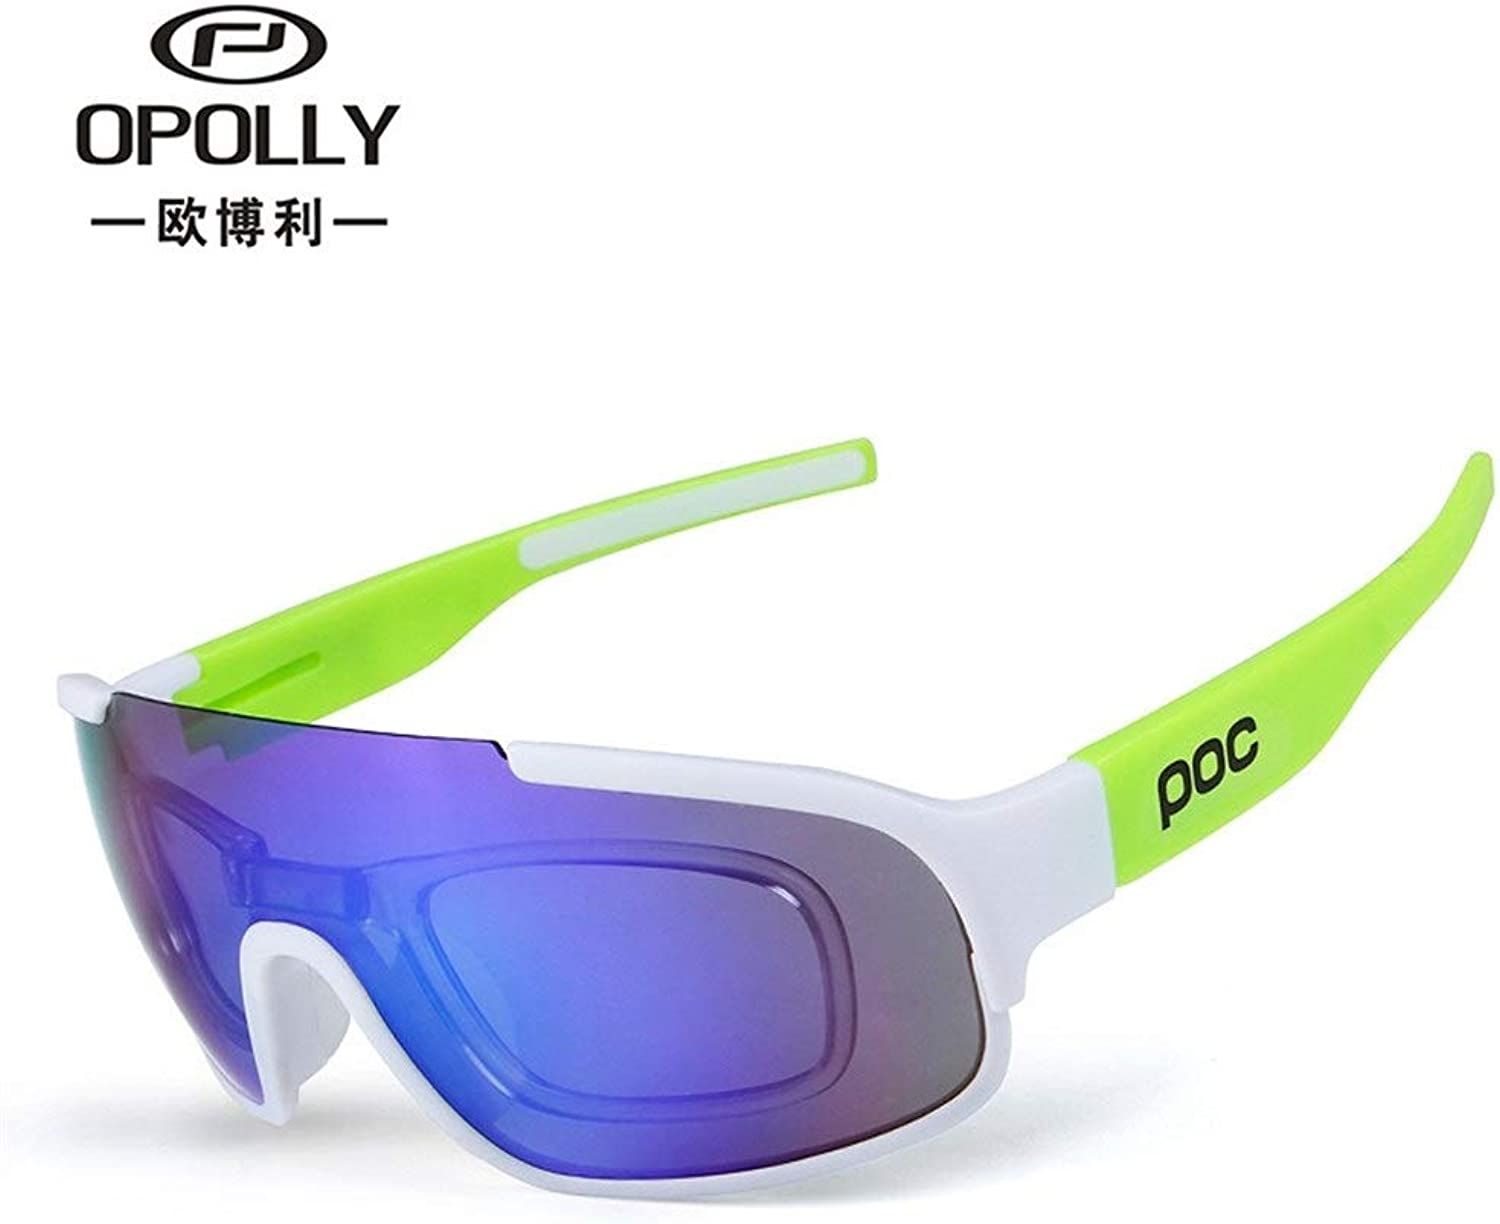 Sandproof polarized bicycle glasses outdoor sports riding windproof glasses